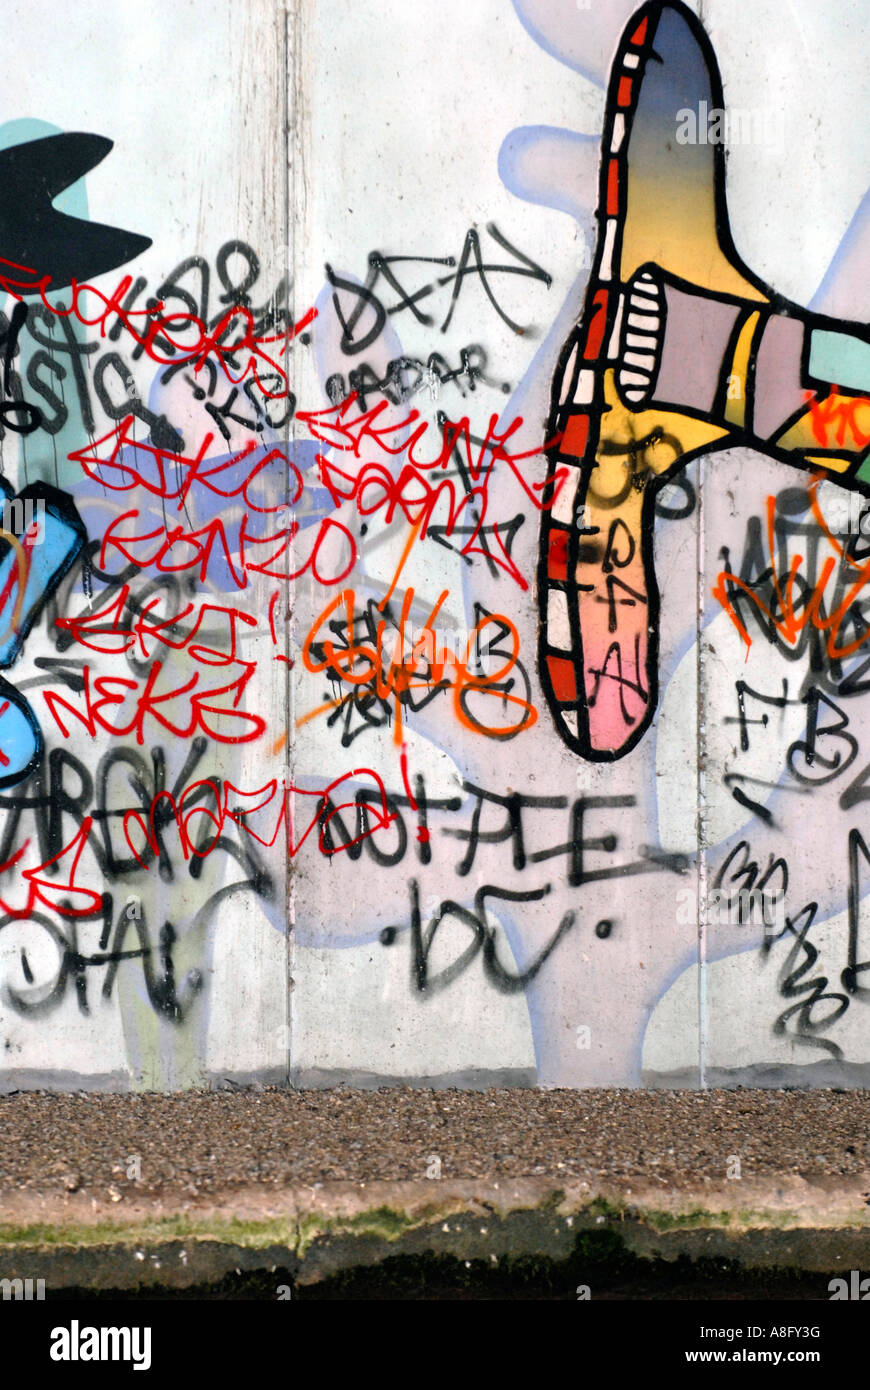 graffitti over painted mural in canalside subway - Stock Image